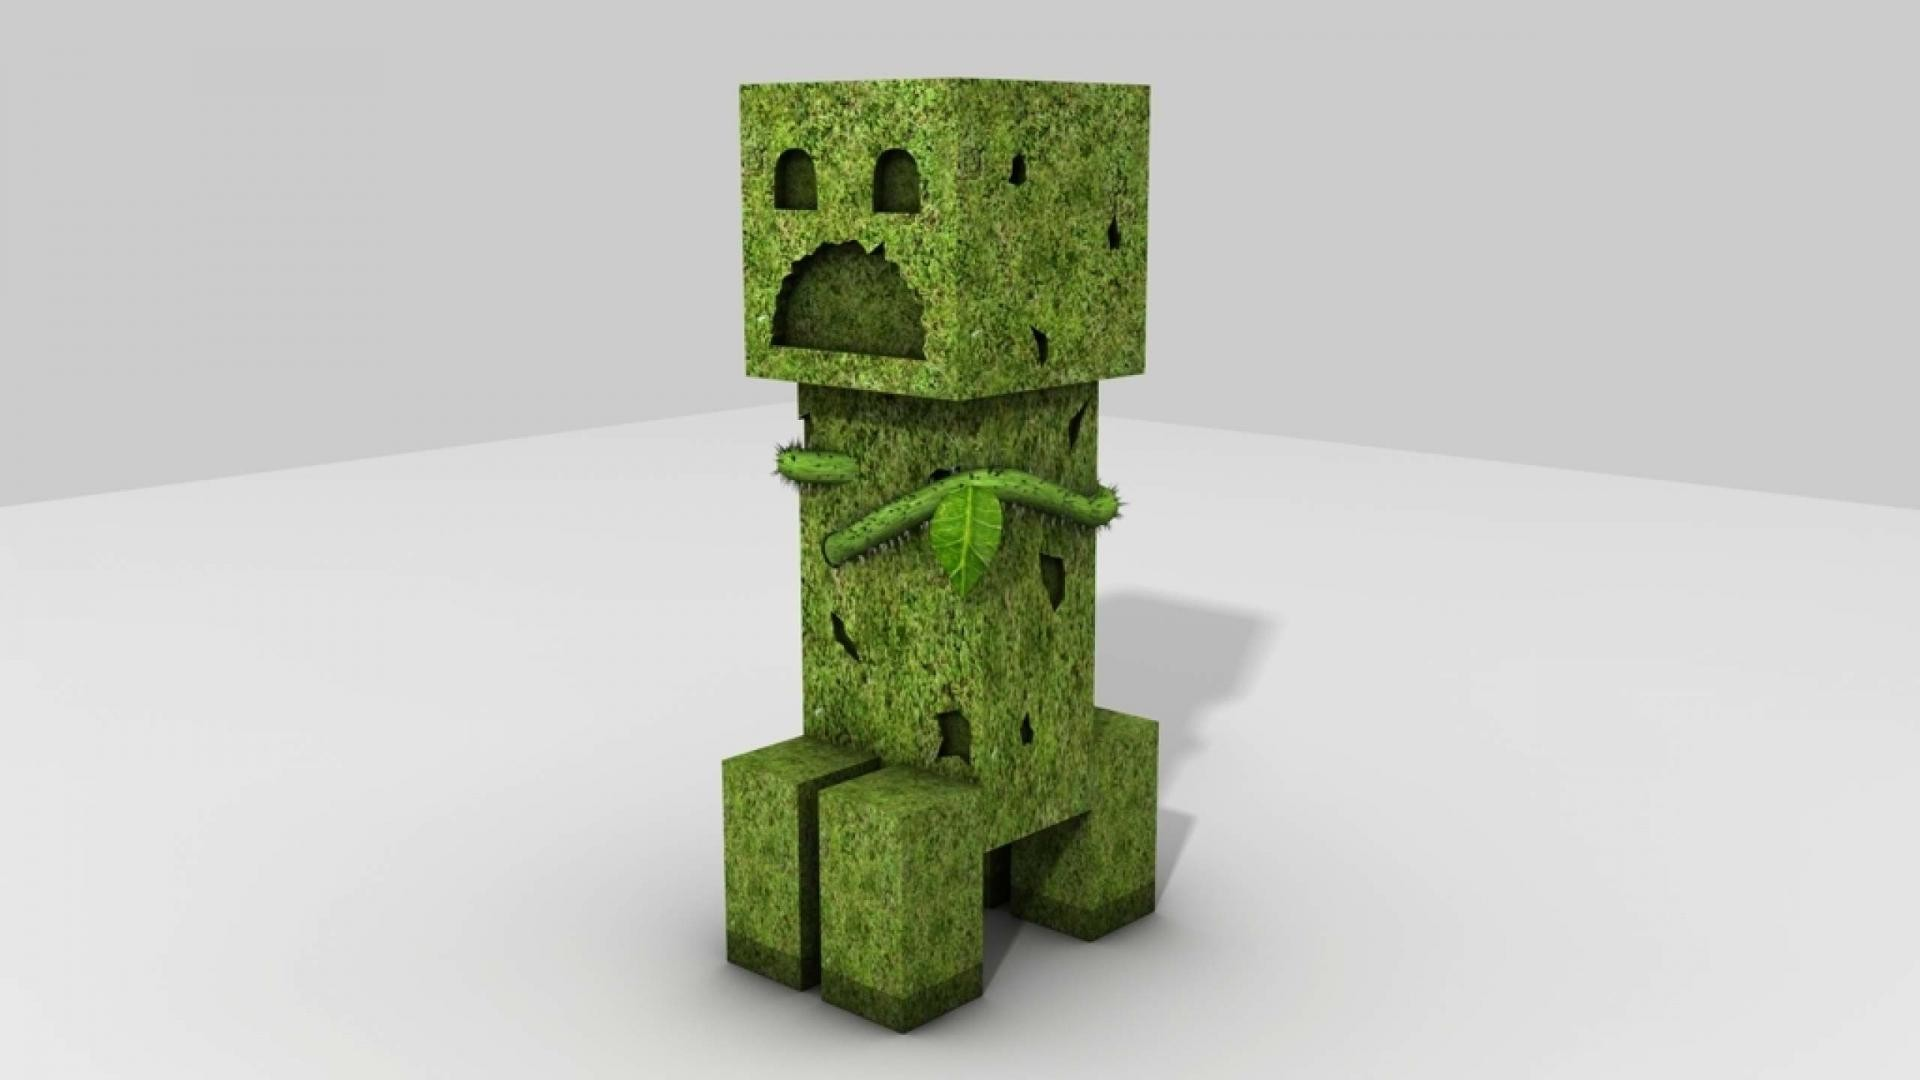 1920x1080 Creeper Minecraft Pictures HD Wallpaper